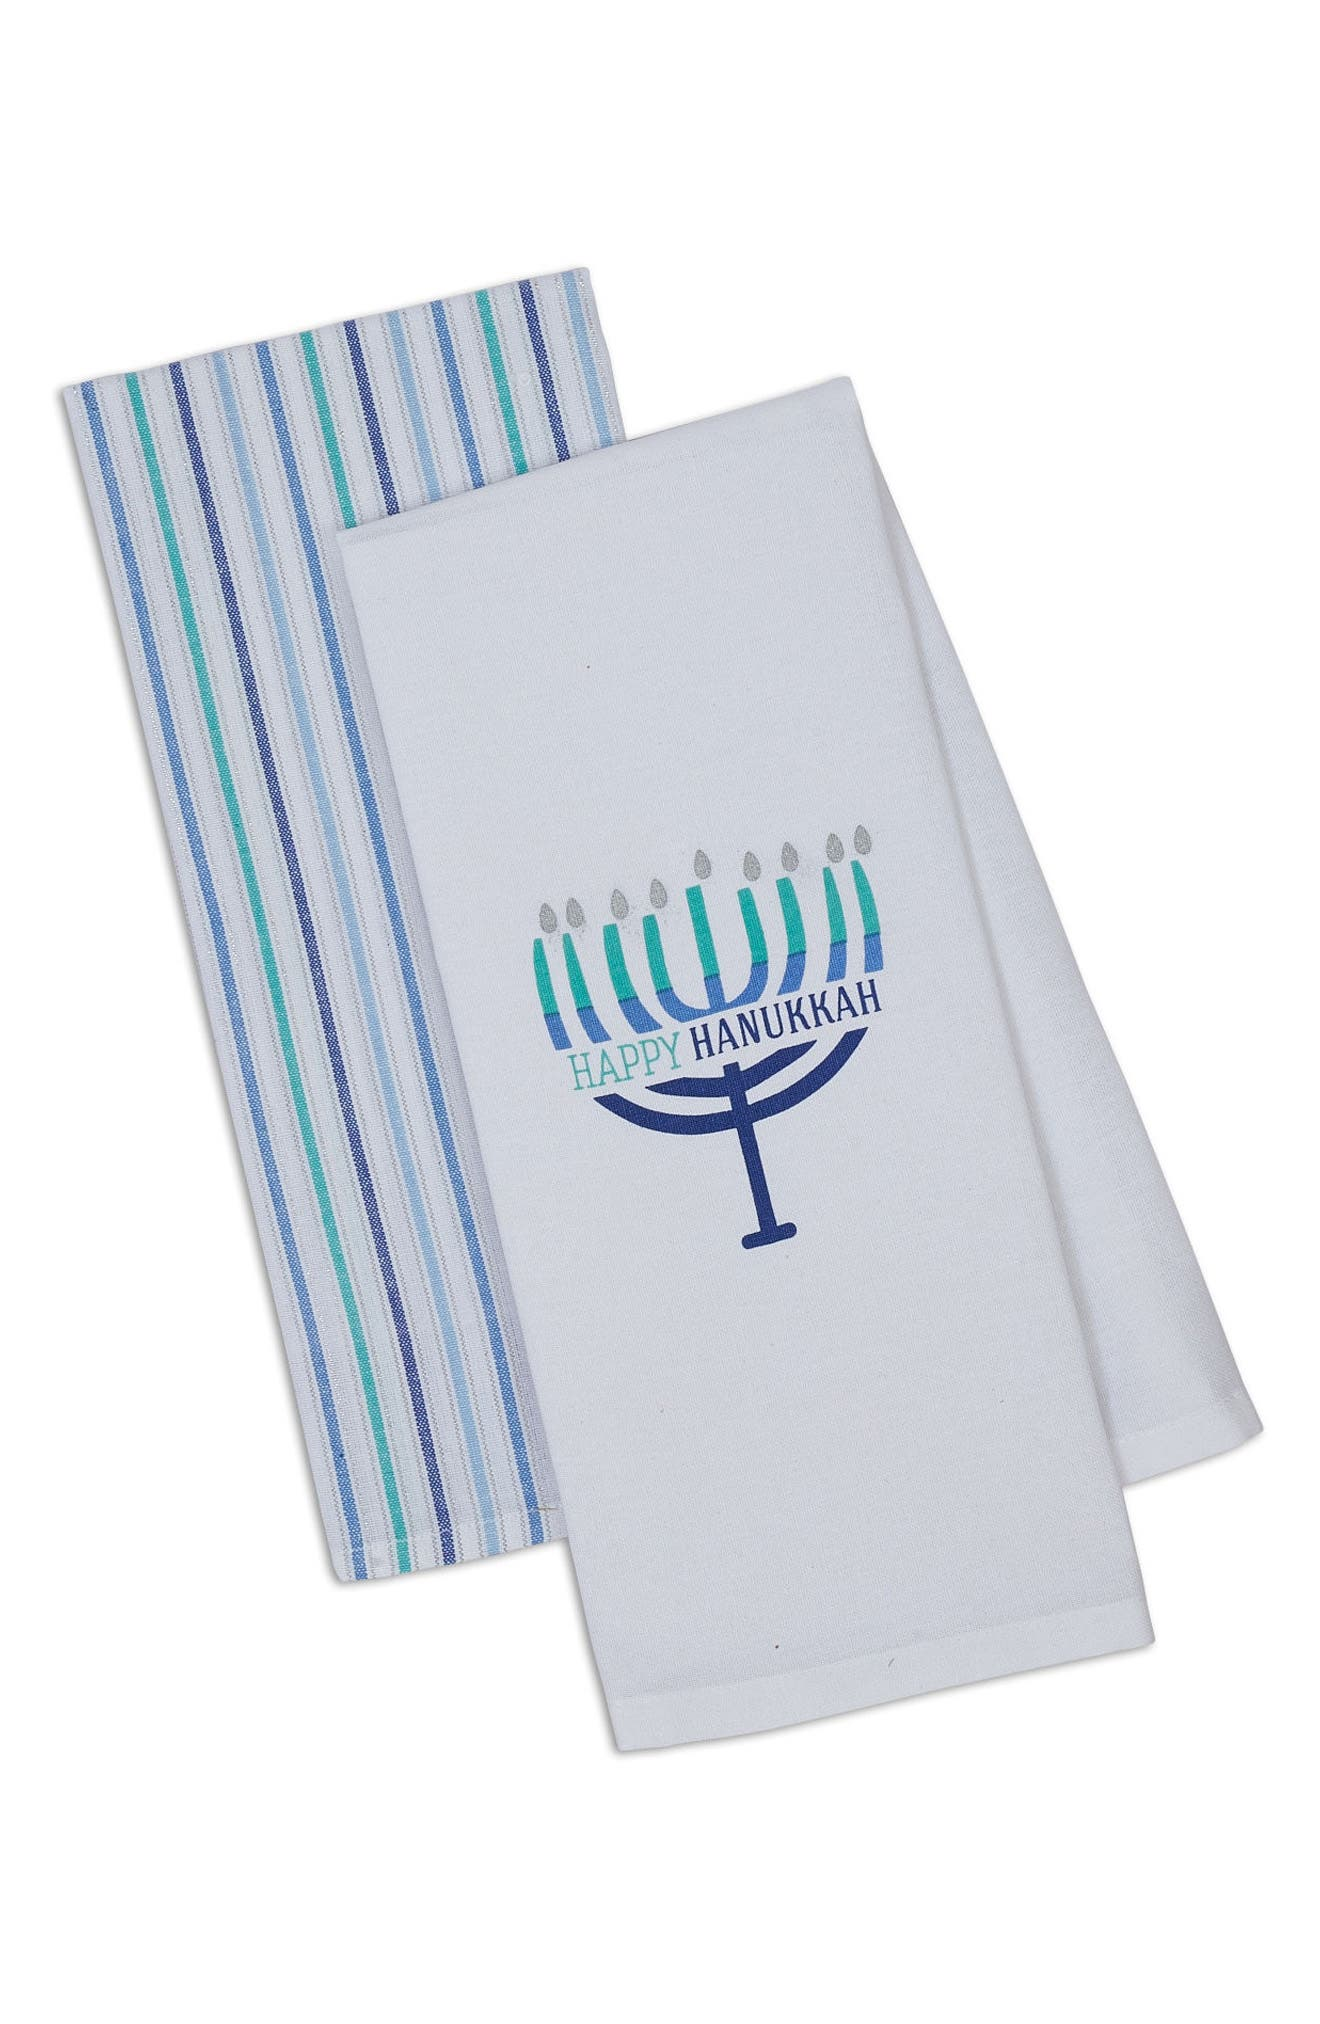 Design Imports Happy Hanukkah Set of 2 Dish Towels